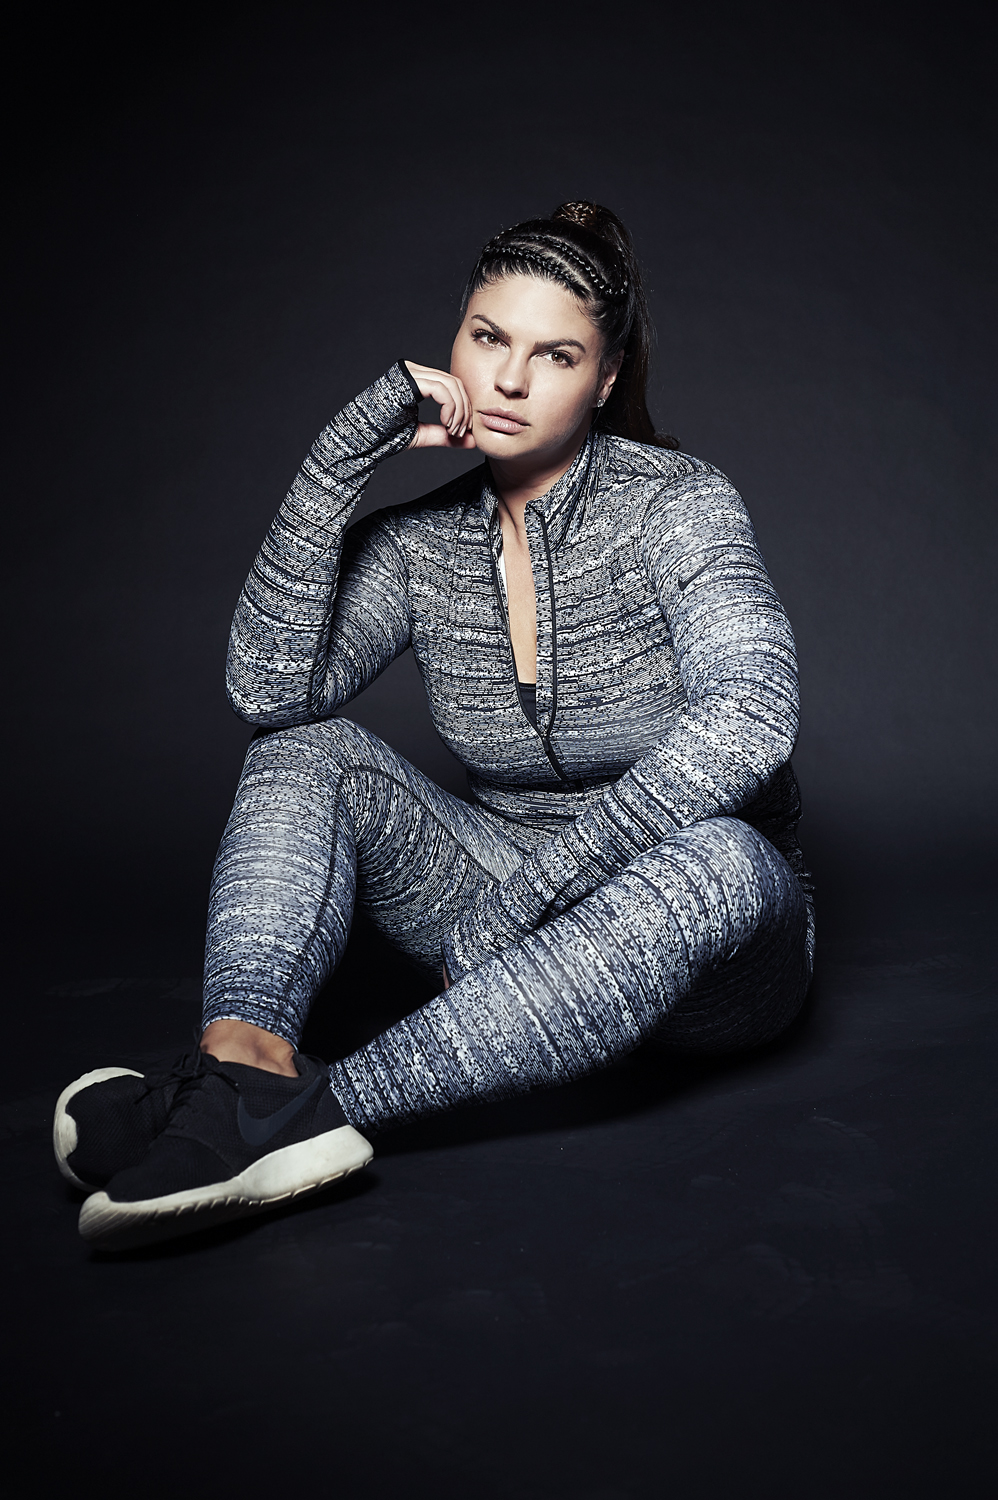 "Me as a plus size model, feeling healthy and strong as a size 14/16, 210lb woman at 5'10.5"". Photo by Elina Khachaturyan, hair by Christine Poindexter, outfit by Nike."